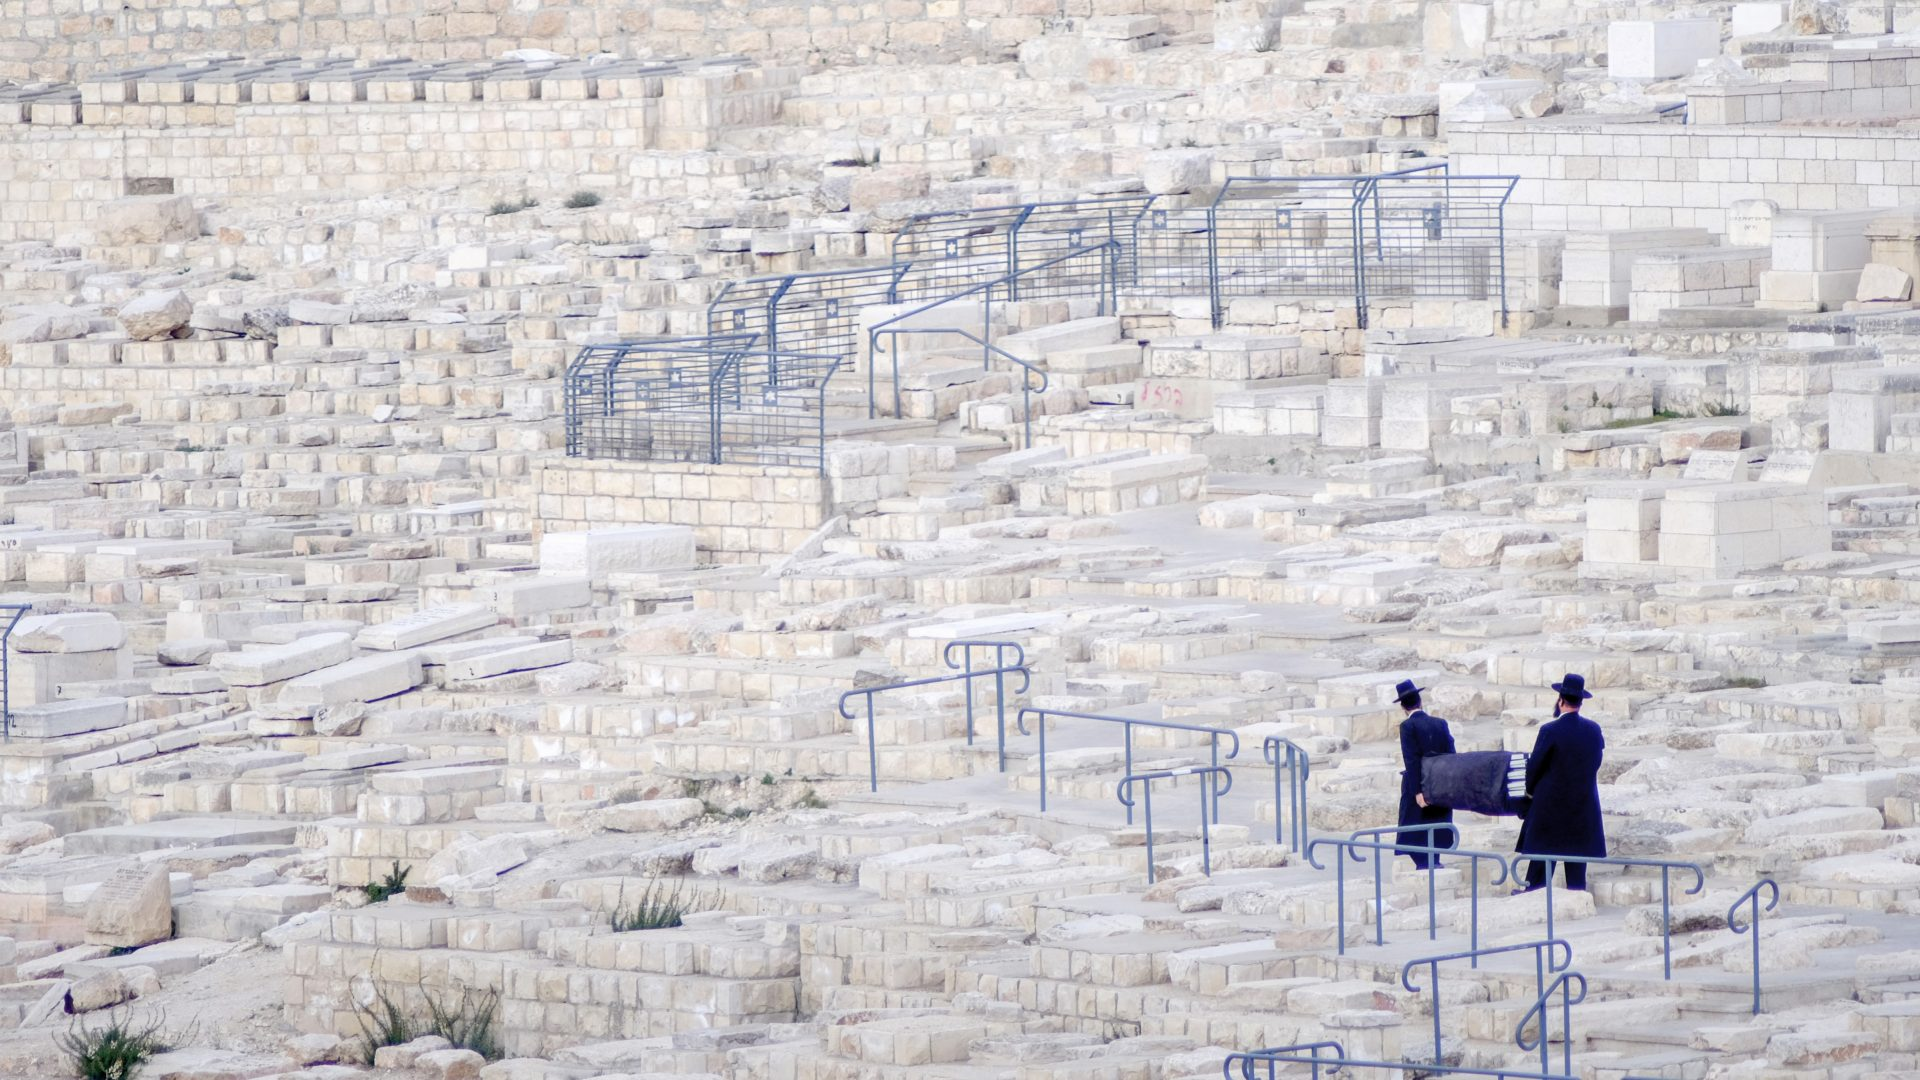 Cemetery at Mount of Olives